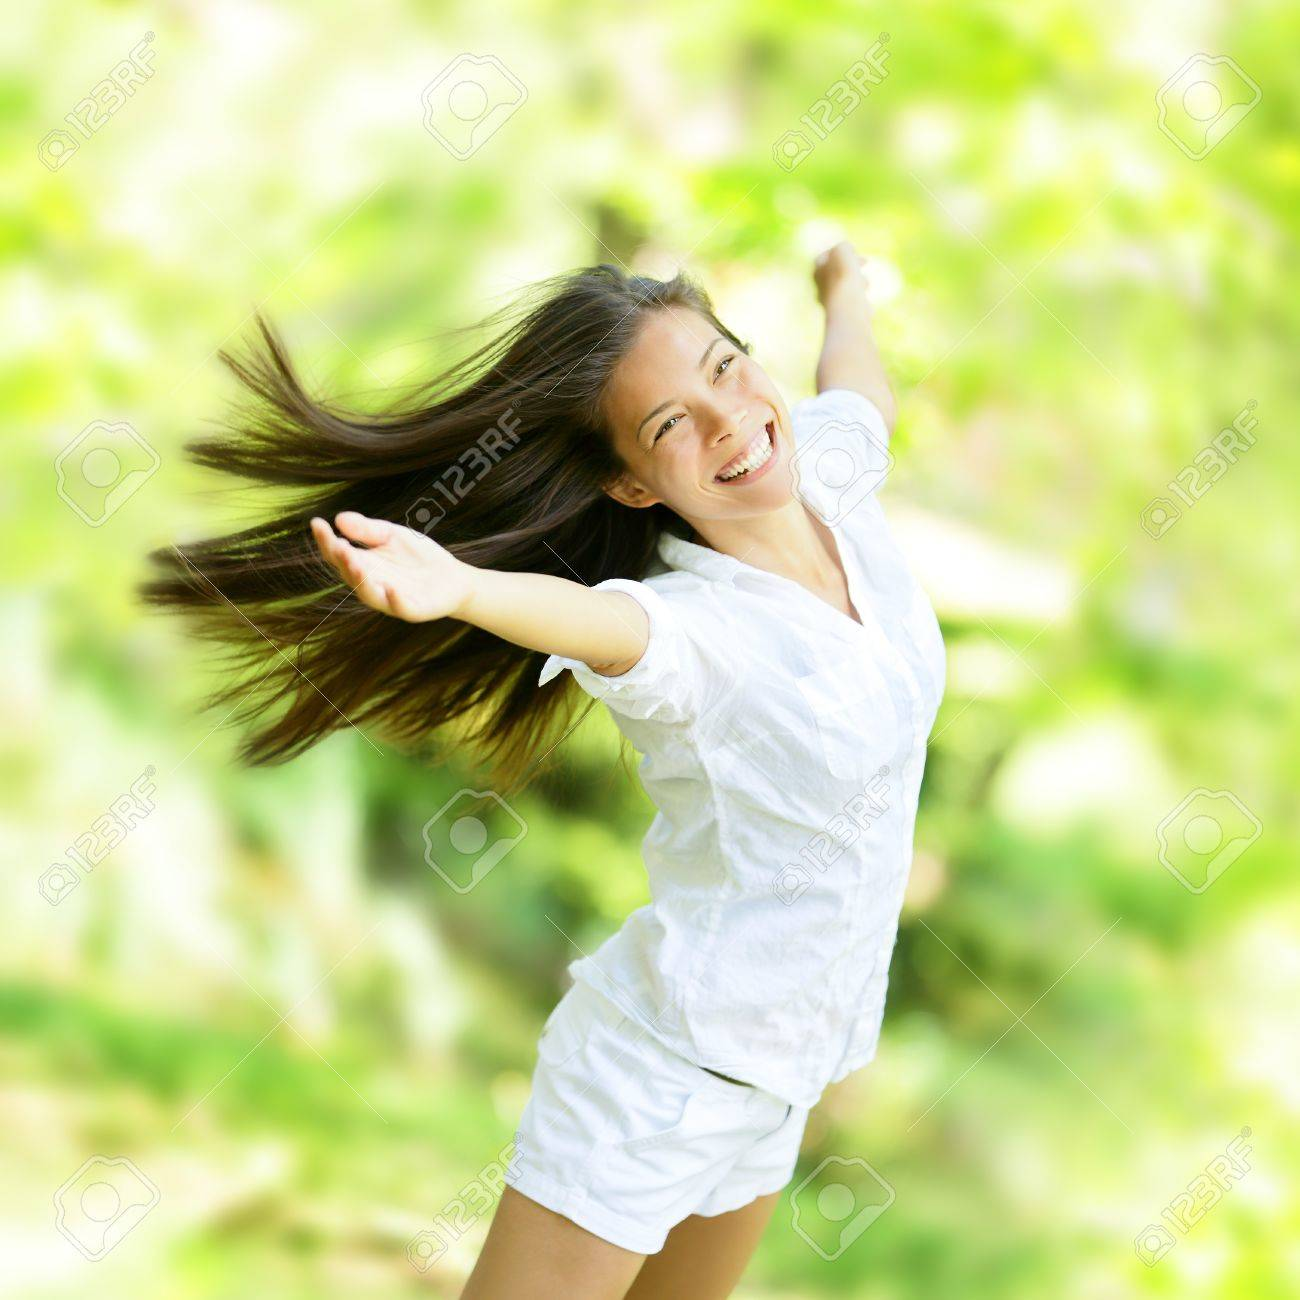 Rejoicing happy woman in flying motion smiling full of joy and vitality in summer or spring forest. Eurasian female model. - 19203324